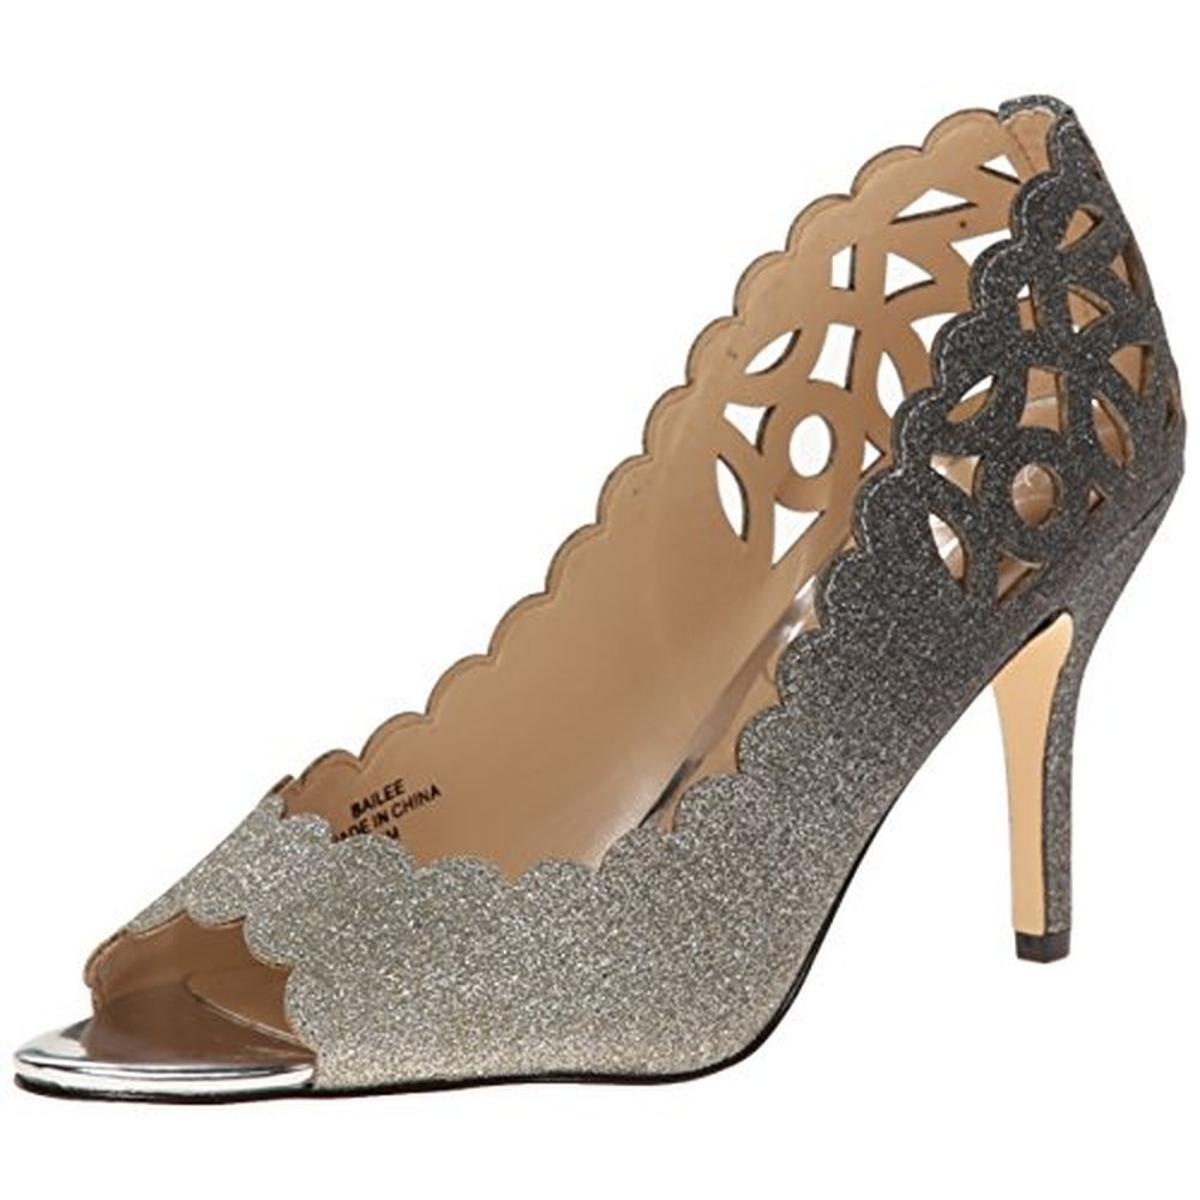 J. Renee Womens Bailee Cut-Out Scalloped Pumps by J. Renee